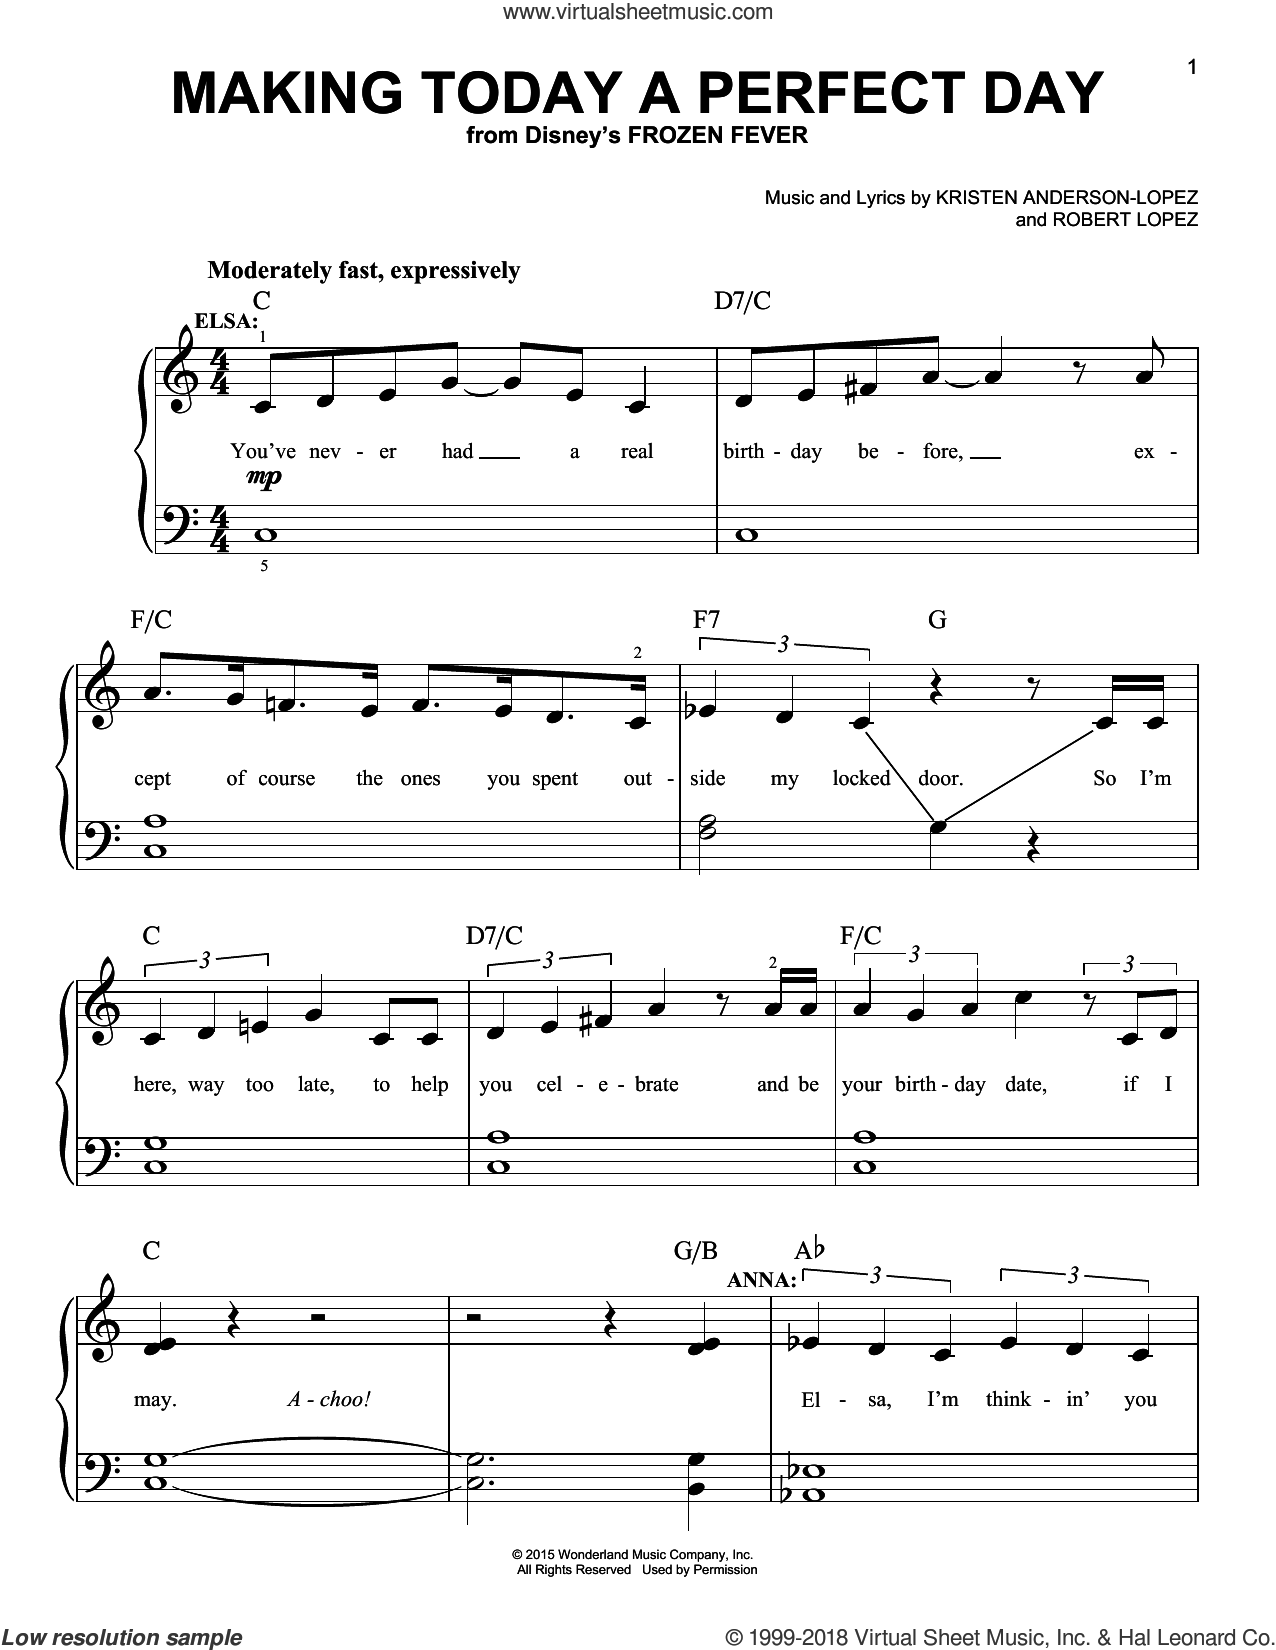 Making Today A Perfect Day (from Frozen Fever) sheet music for piano solo by Robert Lopez, Idina Menzel, Idina Menzel & Kristen Bell and Cast, Kristen Bell and Kristen Anderson-Lopez, easy skill level